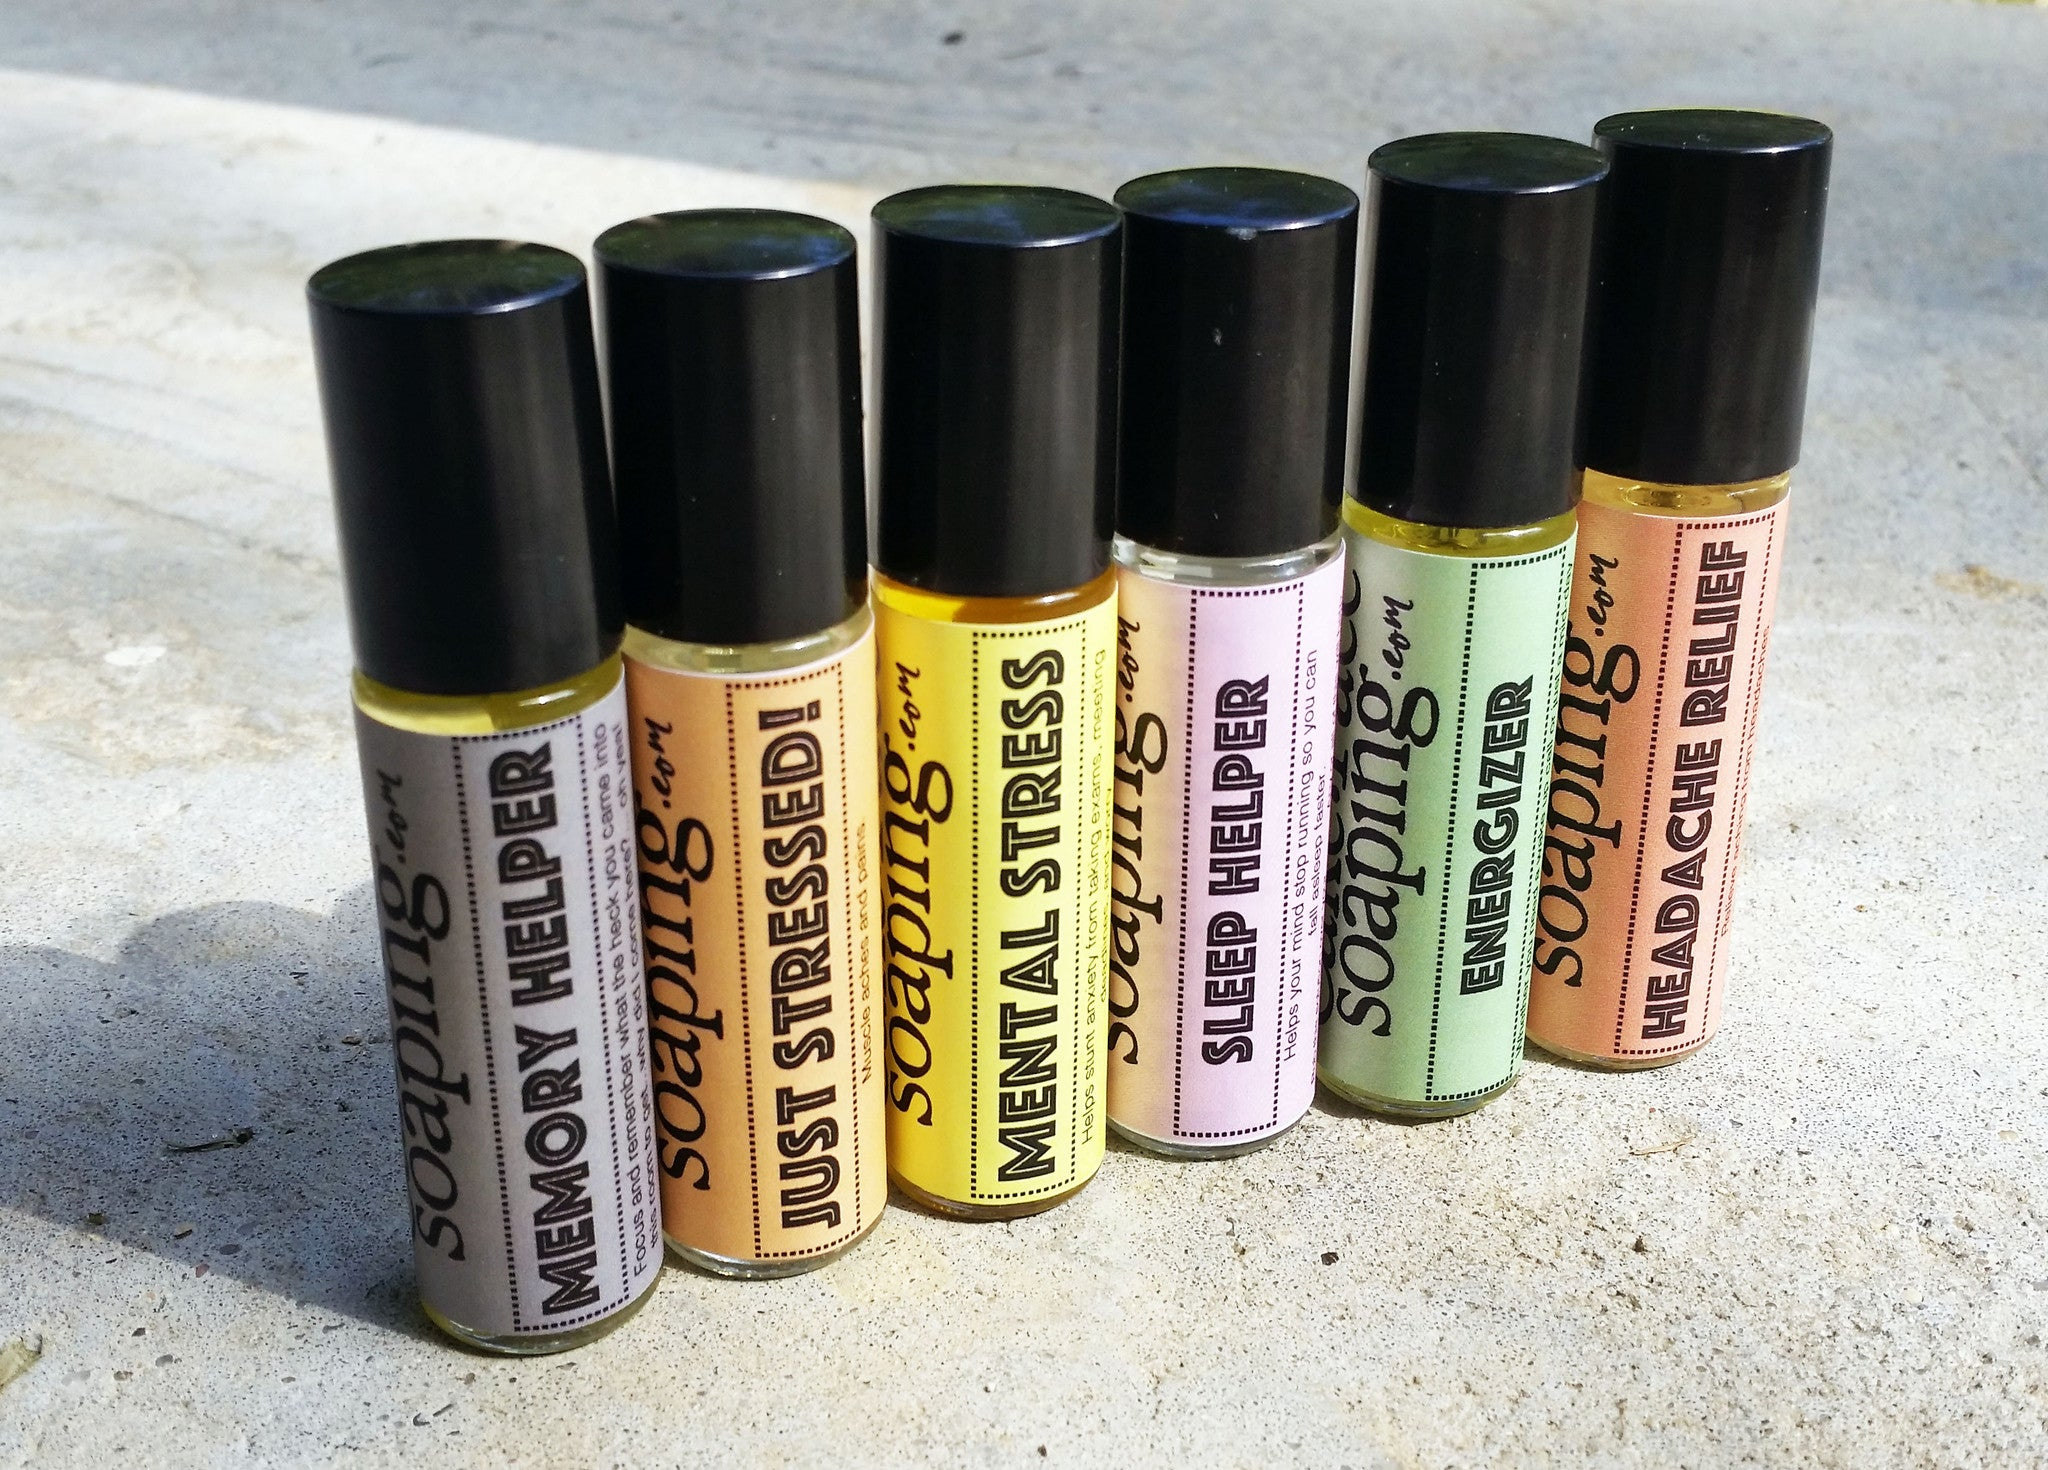 Energizer Roll-on Perfumed oil